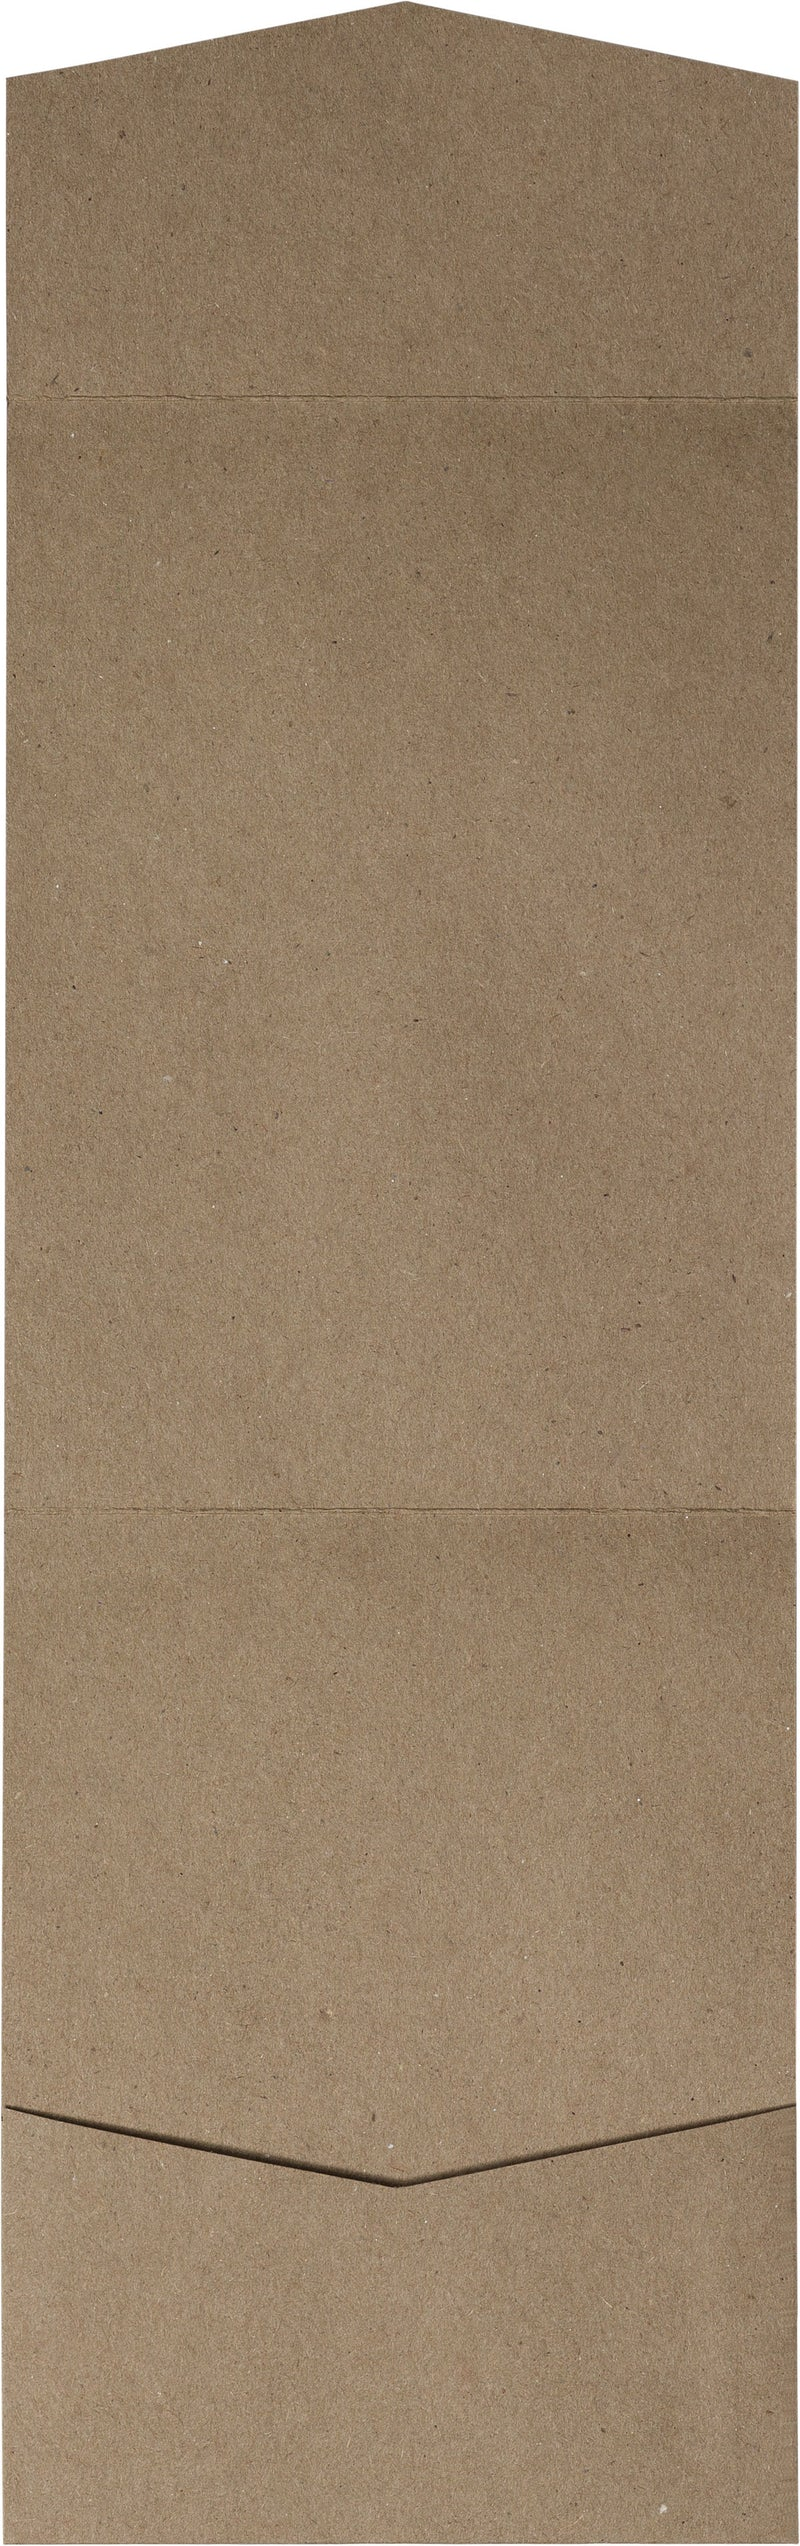 products/a7_kraft_brown_recycled_cascade_open-1.jpg